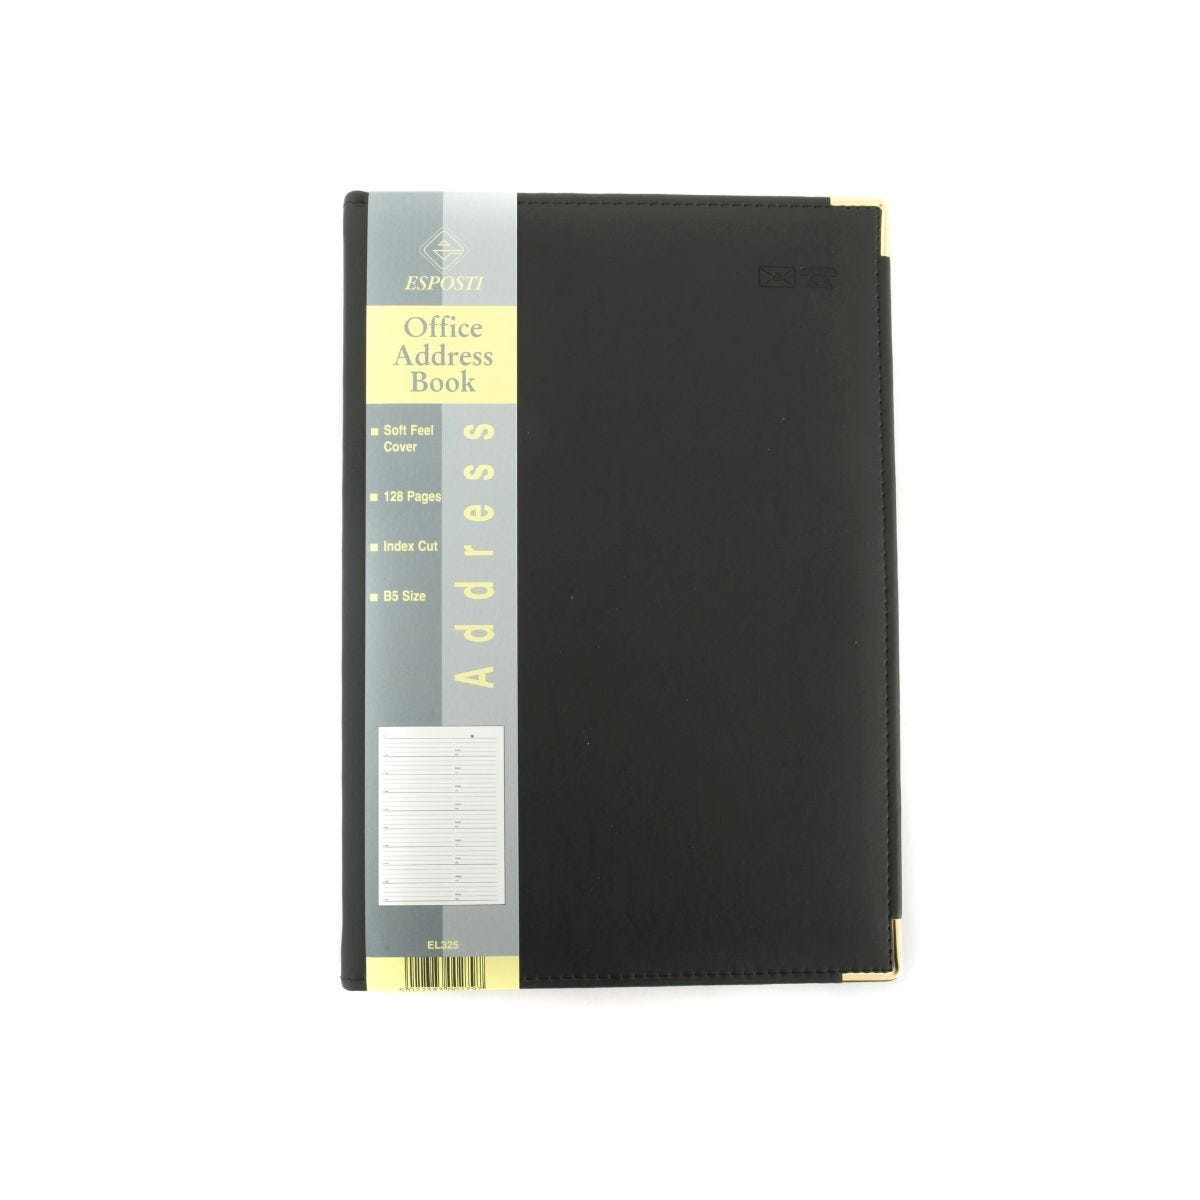 Esposti Address Book Soft Feel Cover B5 128 Pages 64 Sheets